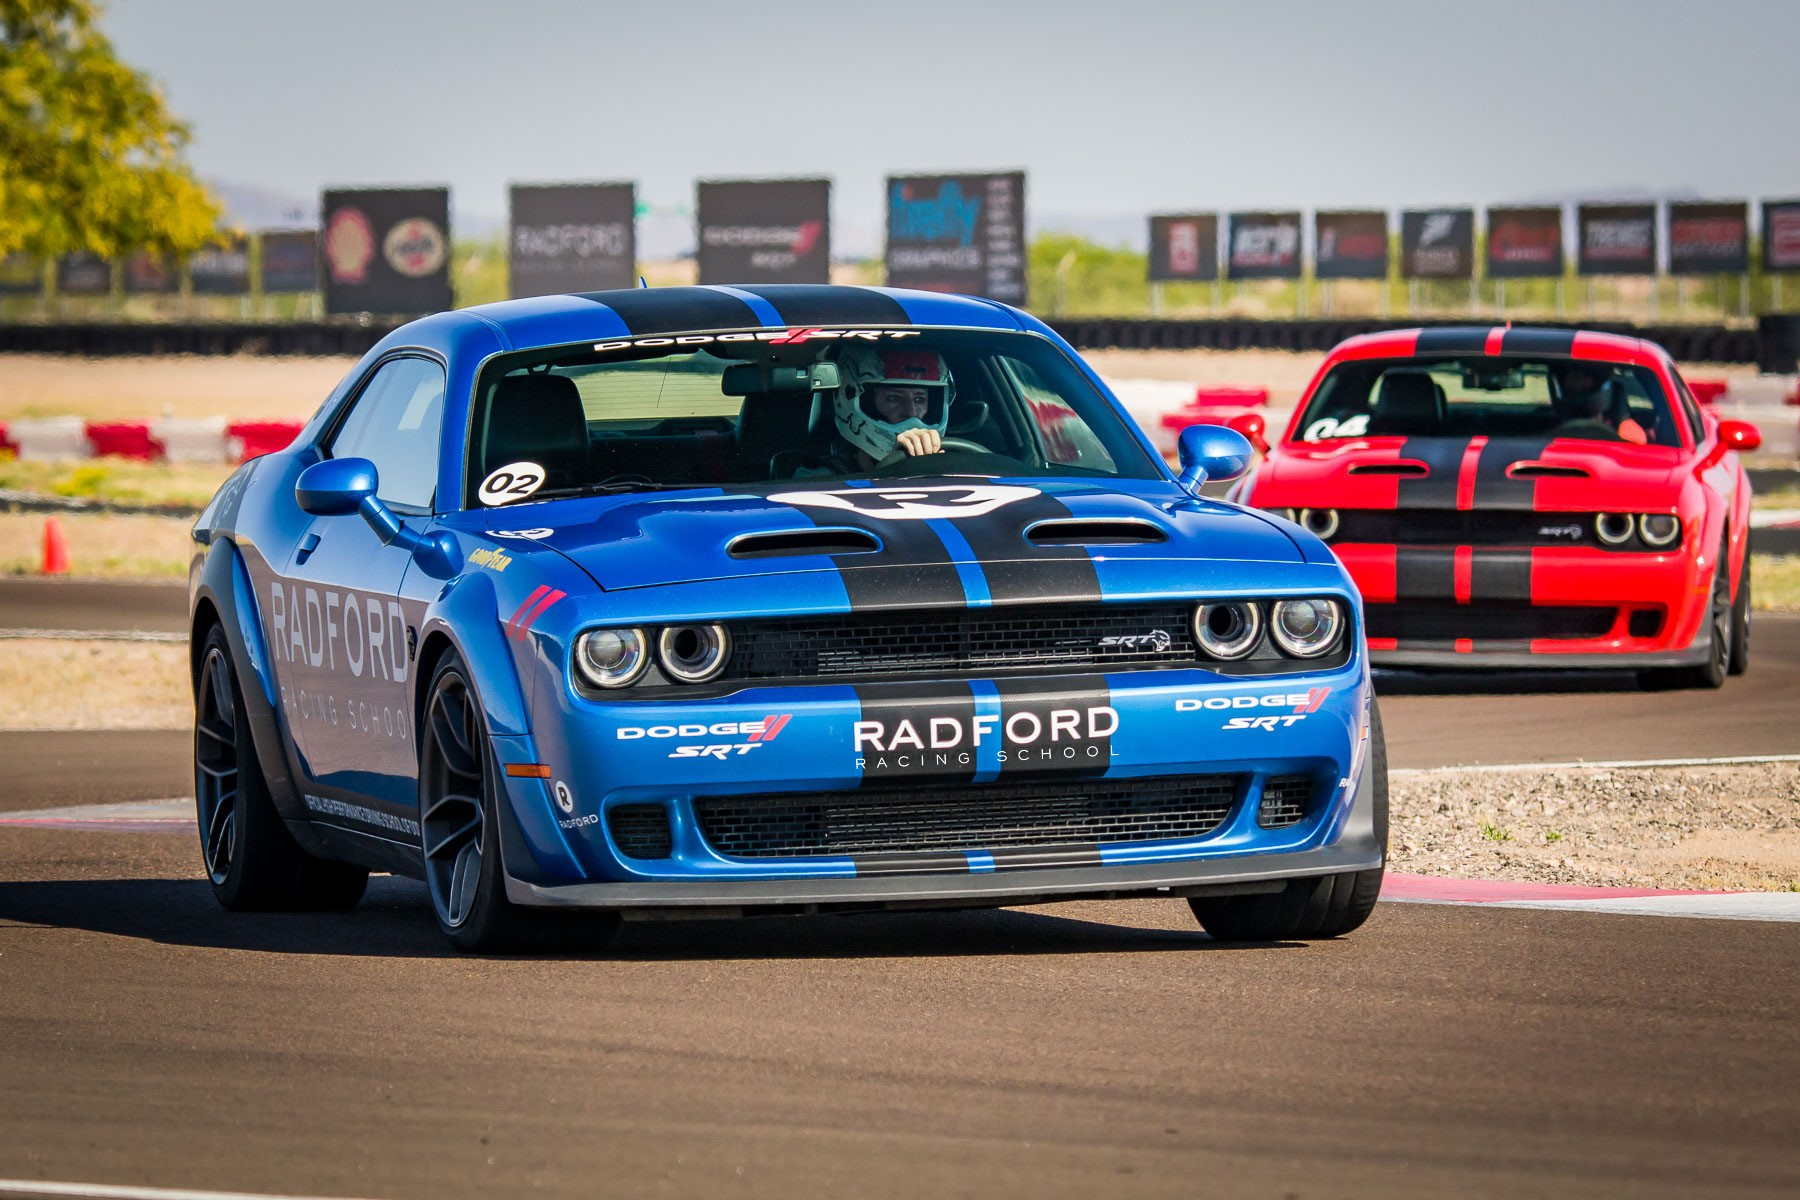 Plus, Win a 2-Day Radford Racing School Experience